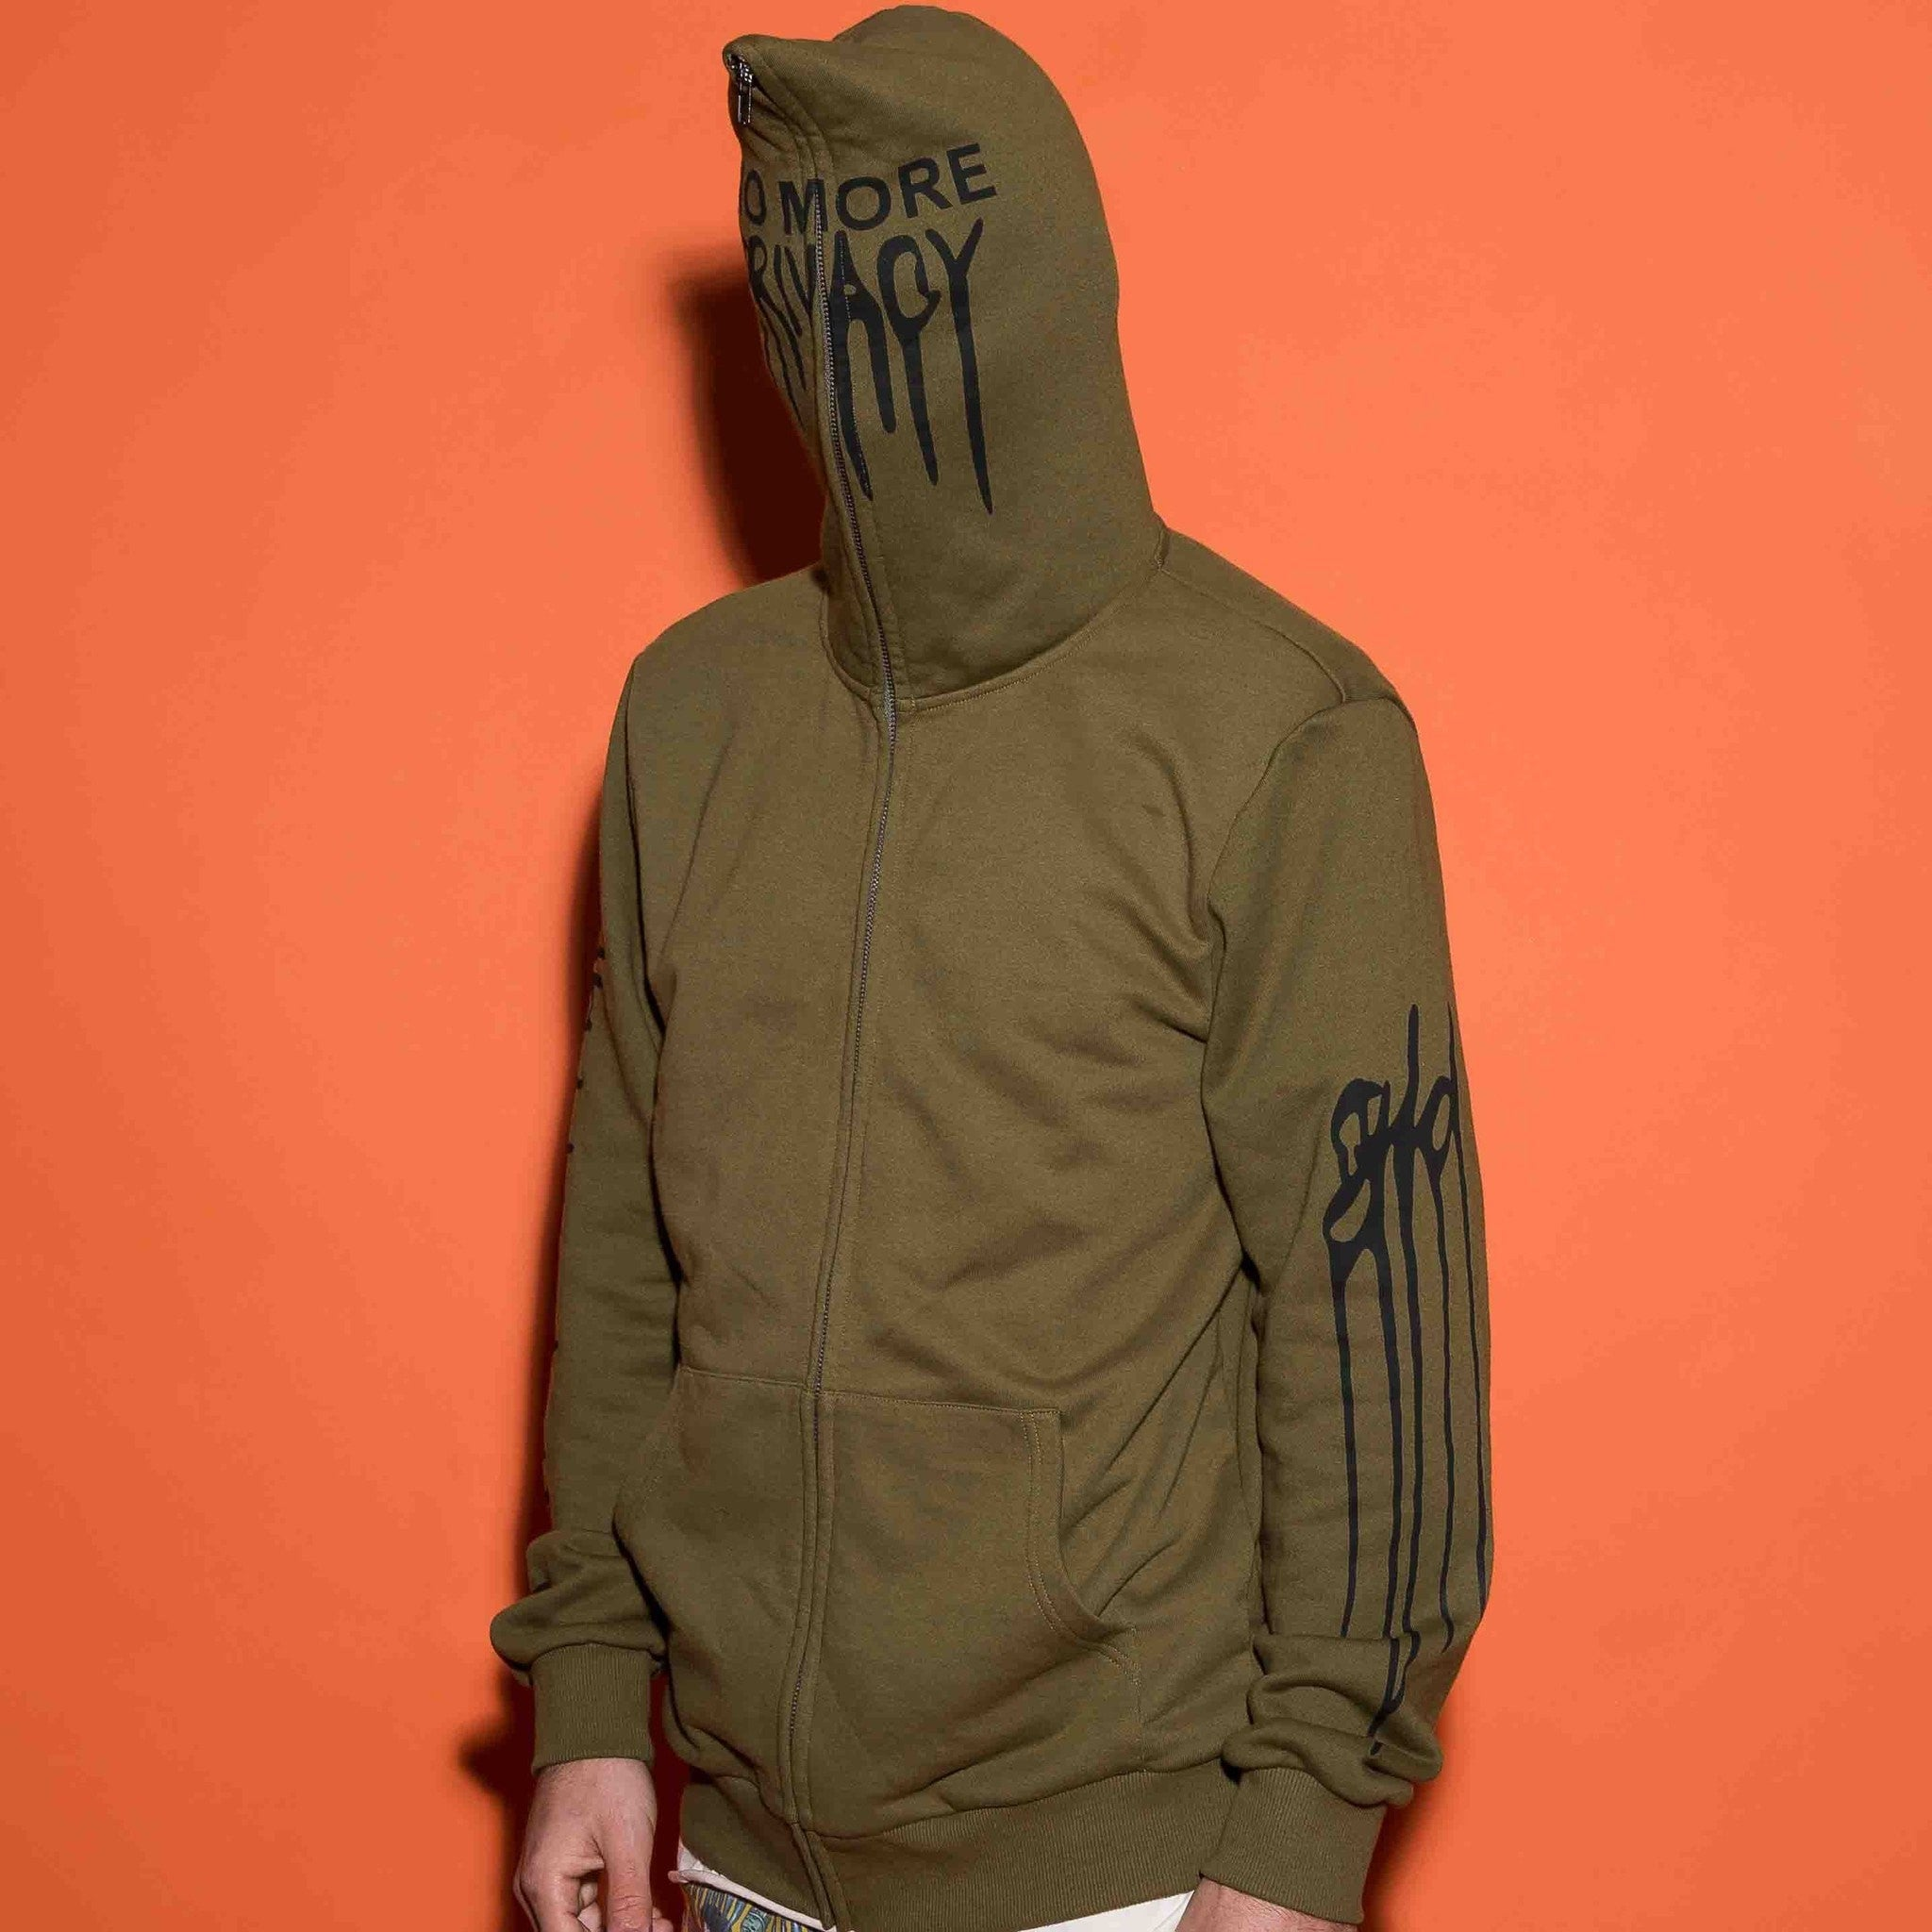 No Privacy Hoodie - Green